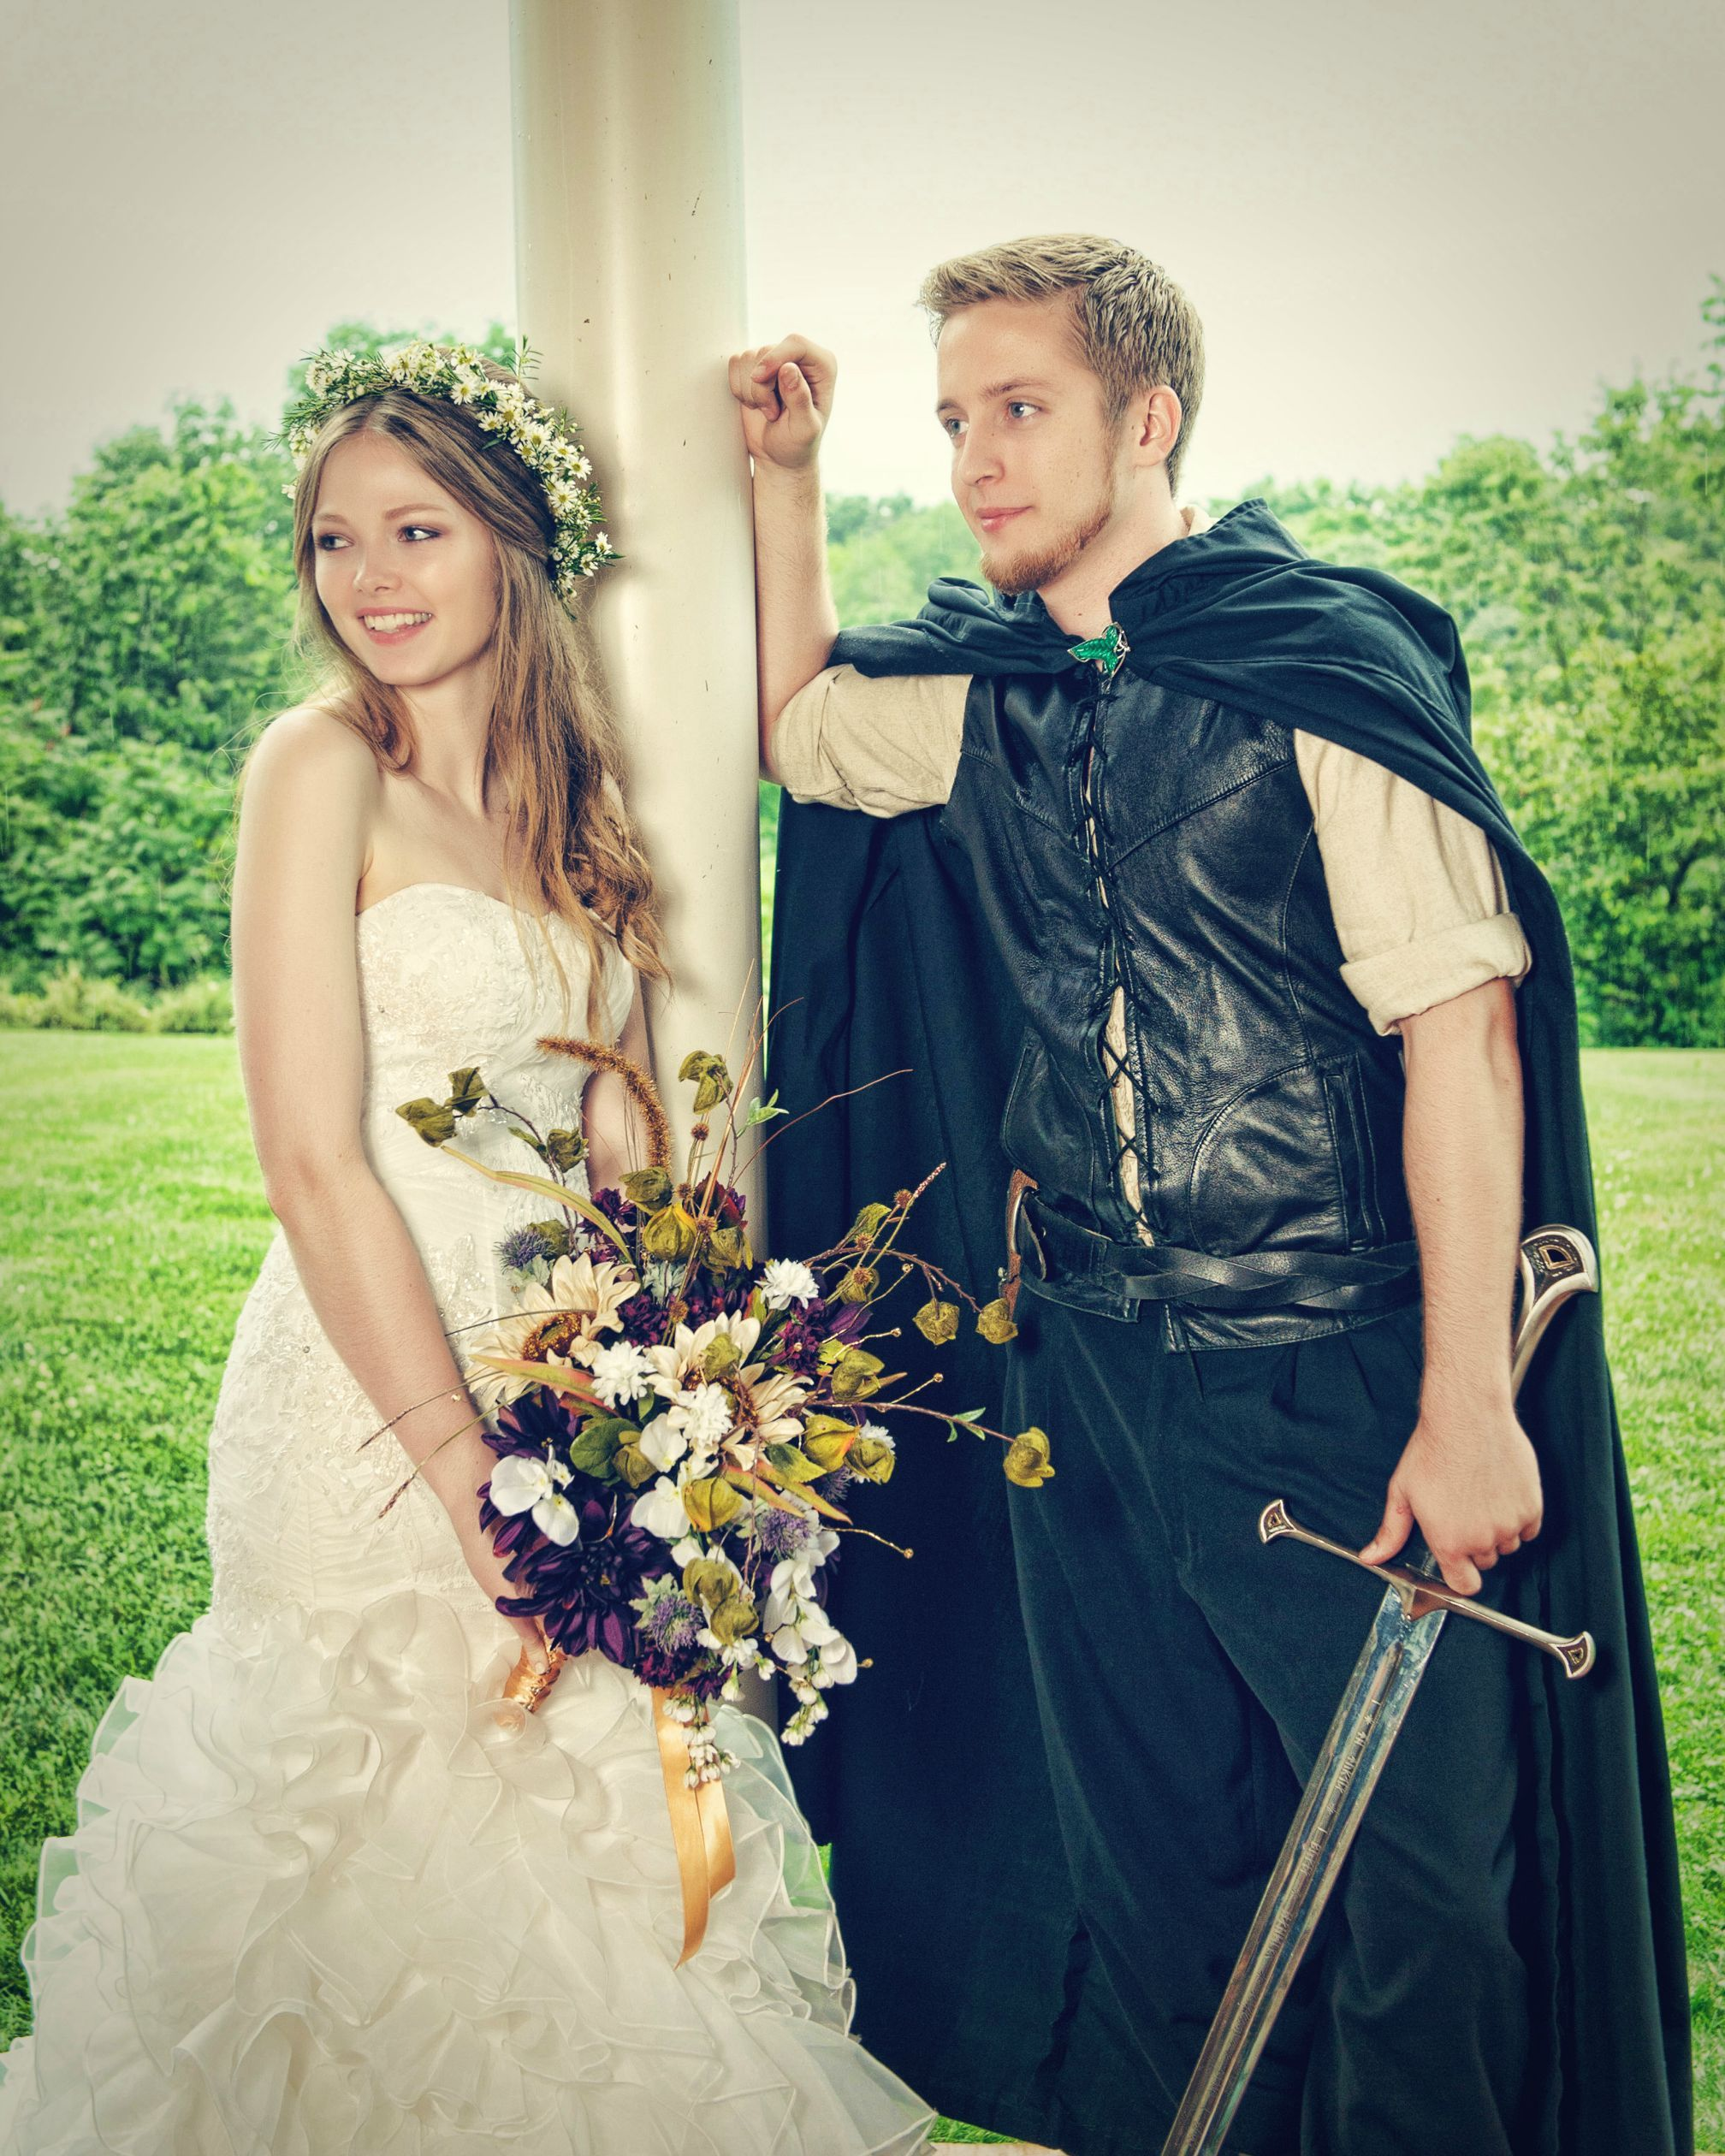 lotr wedding ring lord of the rings wedding Google Search